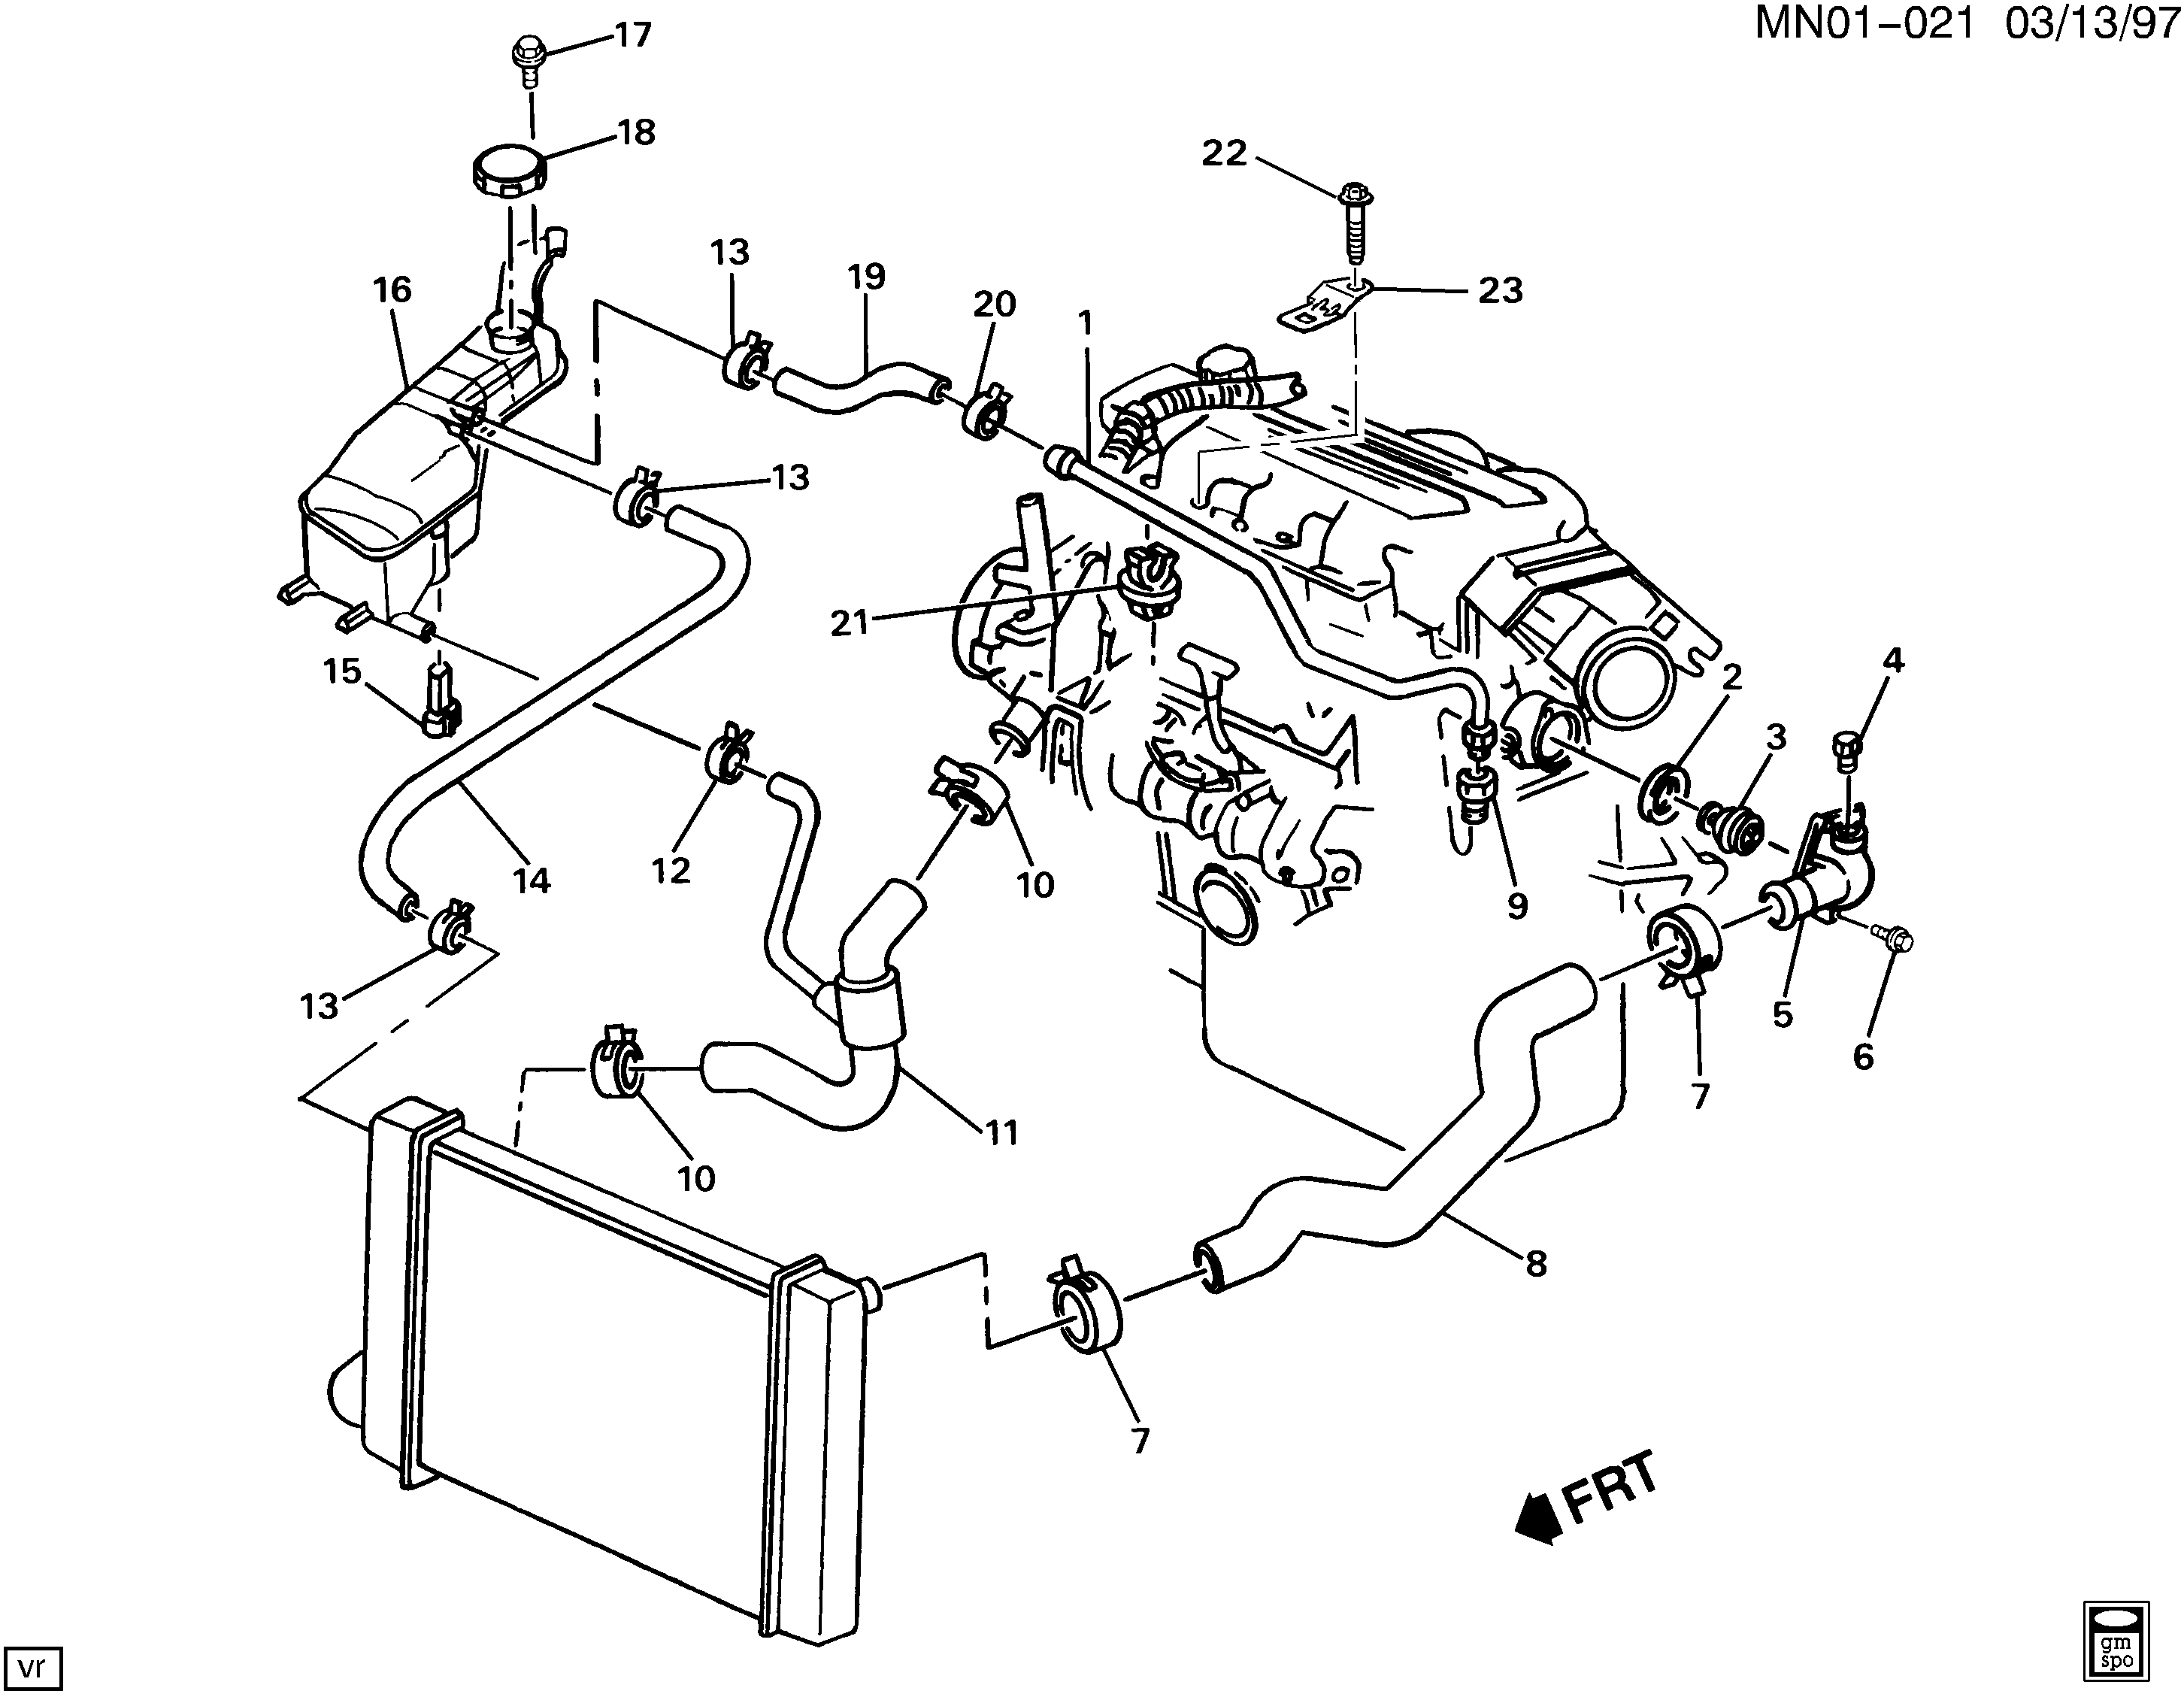 1995 Pontiac Sunfire 2 2 Engine Diagram - Wiring Diagram ...